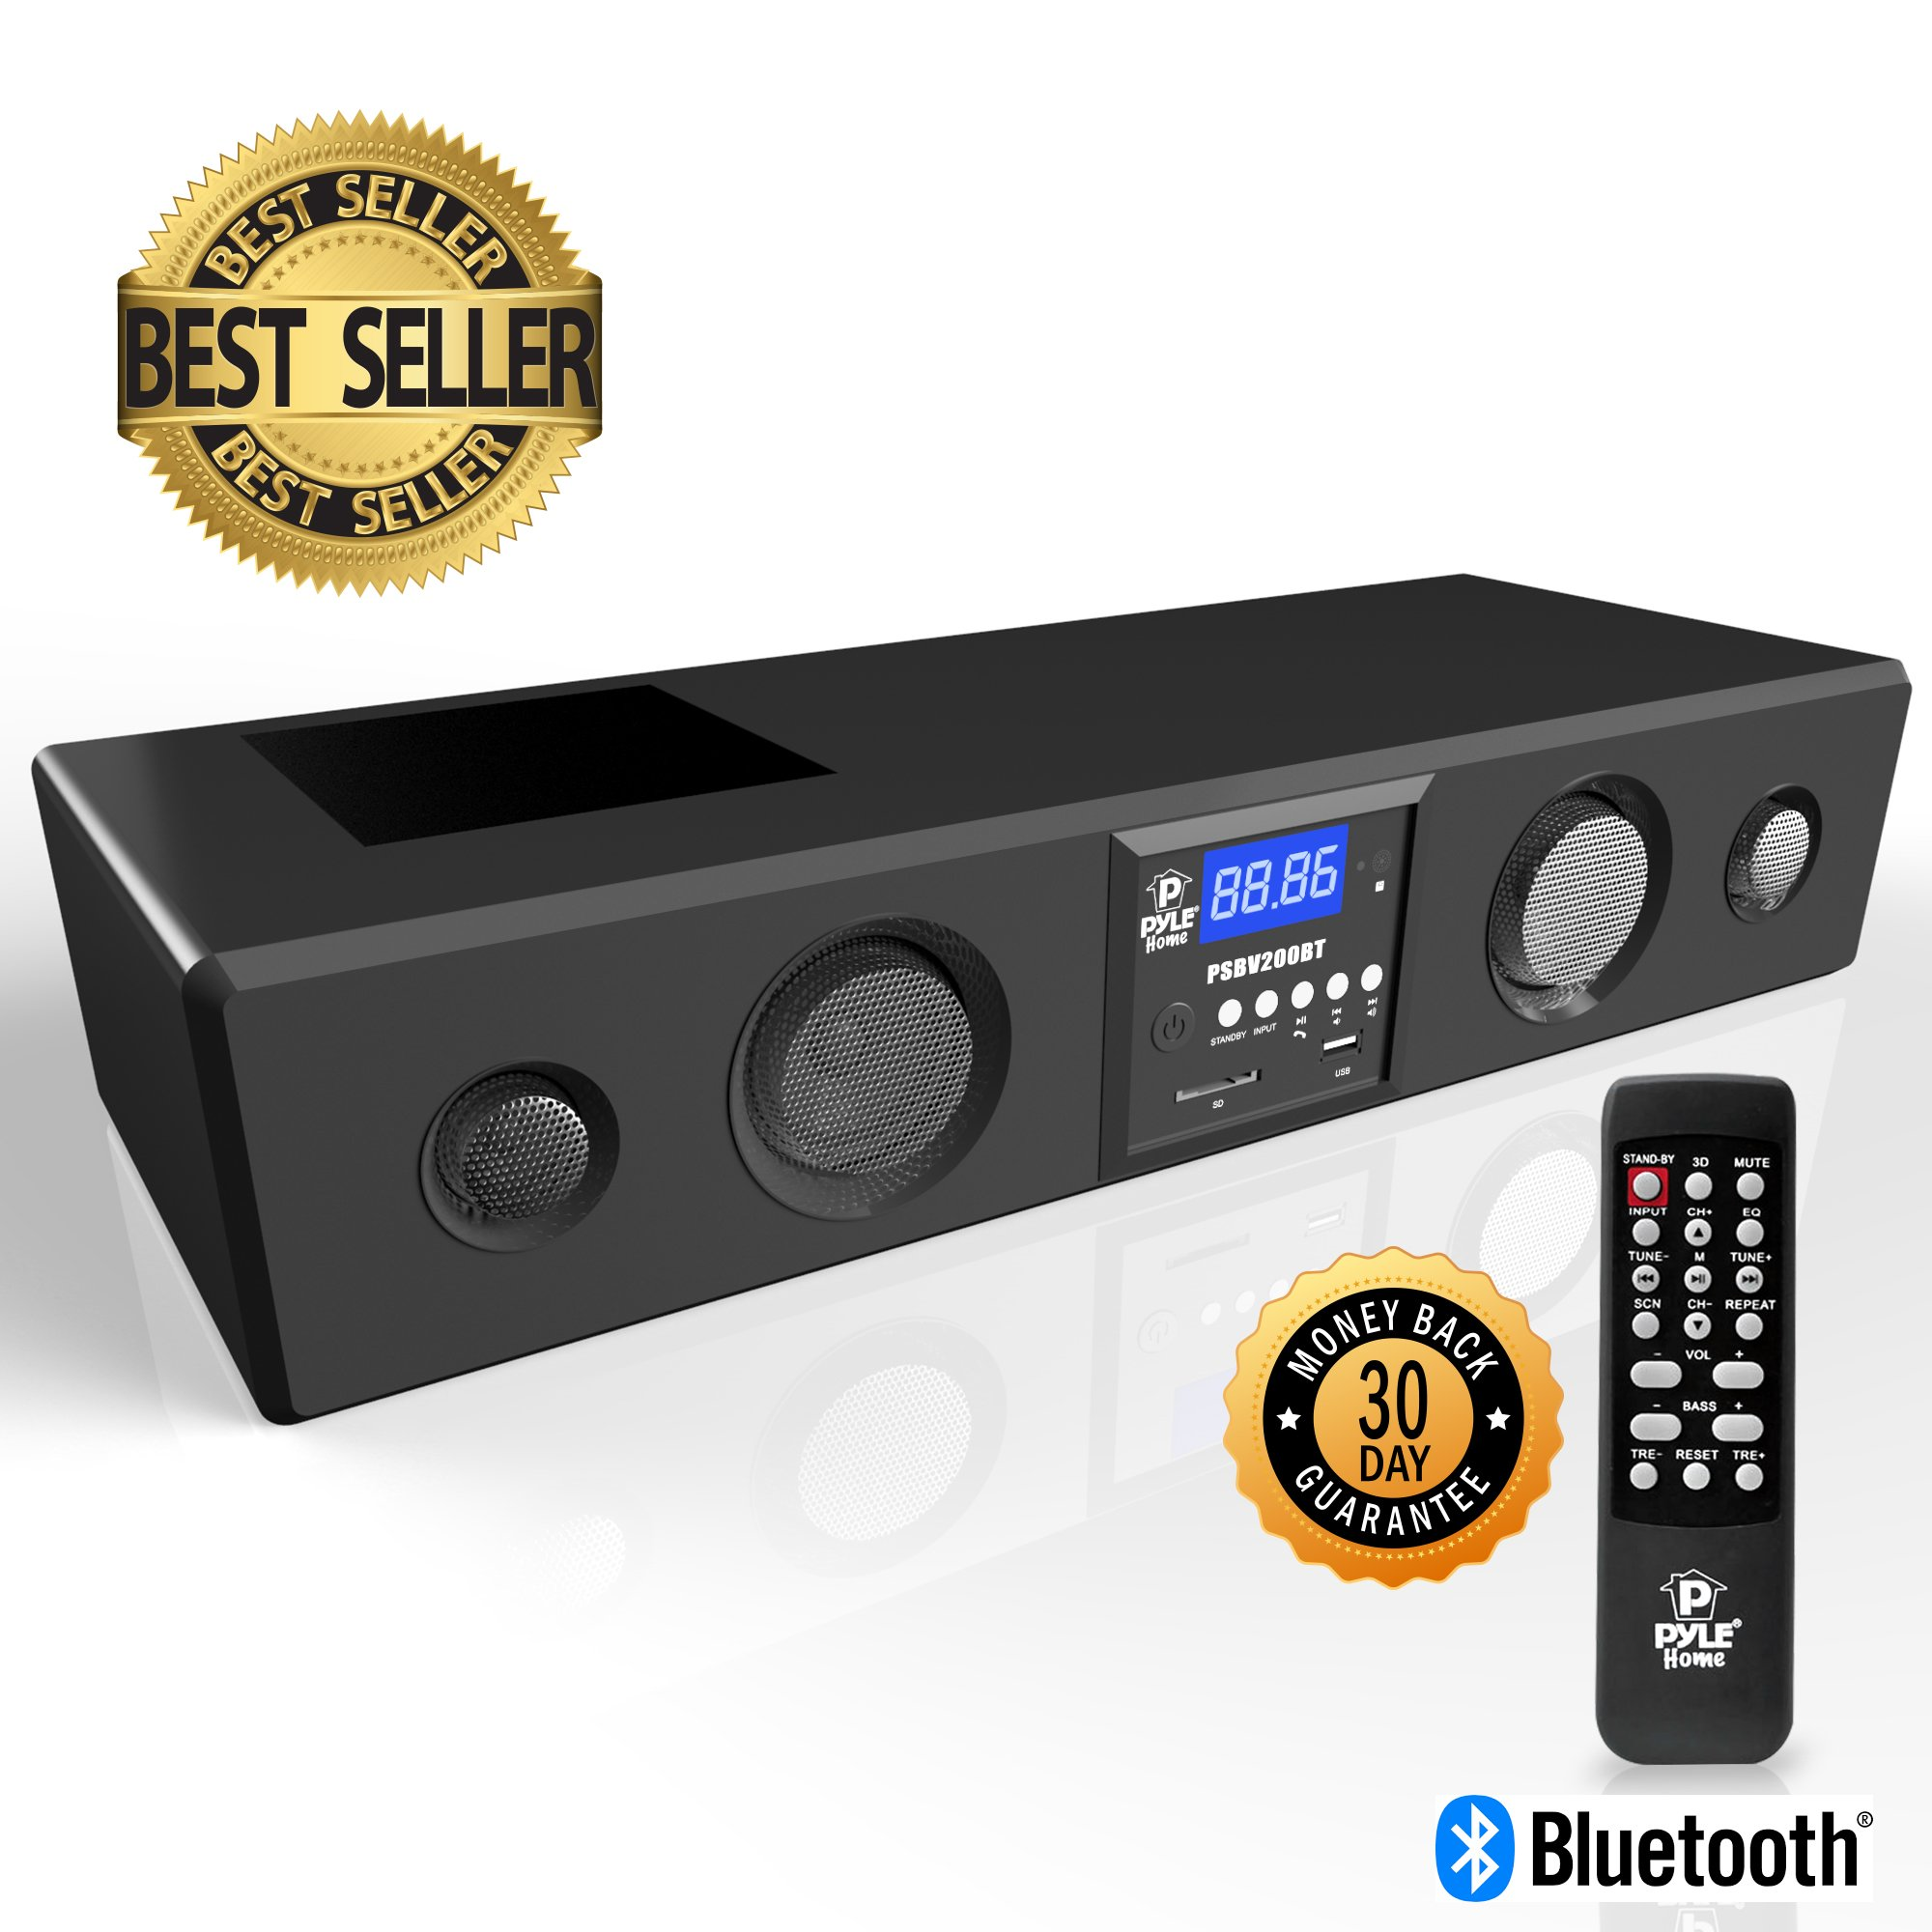 Sound Around Pyle Bluetooth Digital Home Theater Stereo Receiver Aux Input,